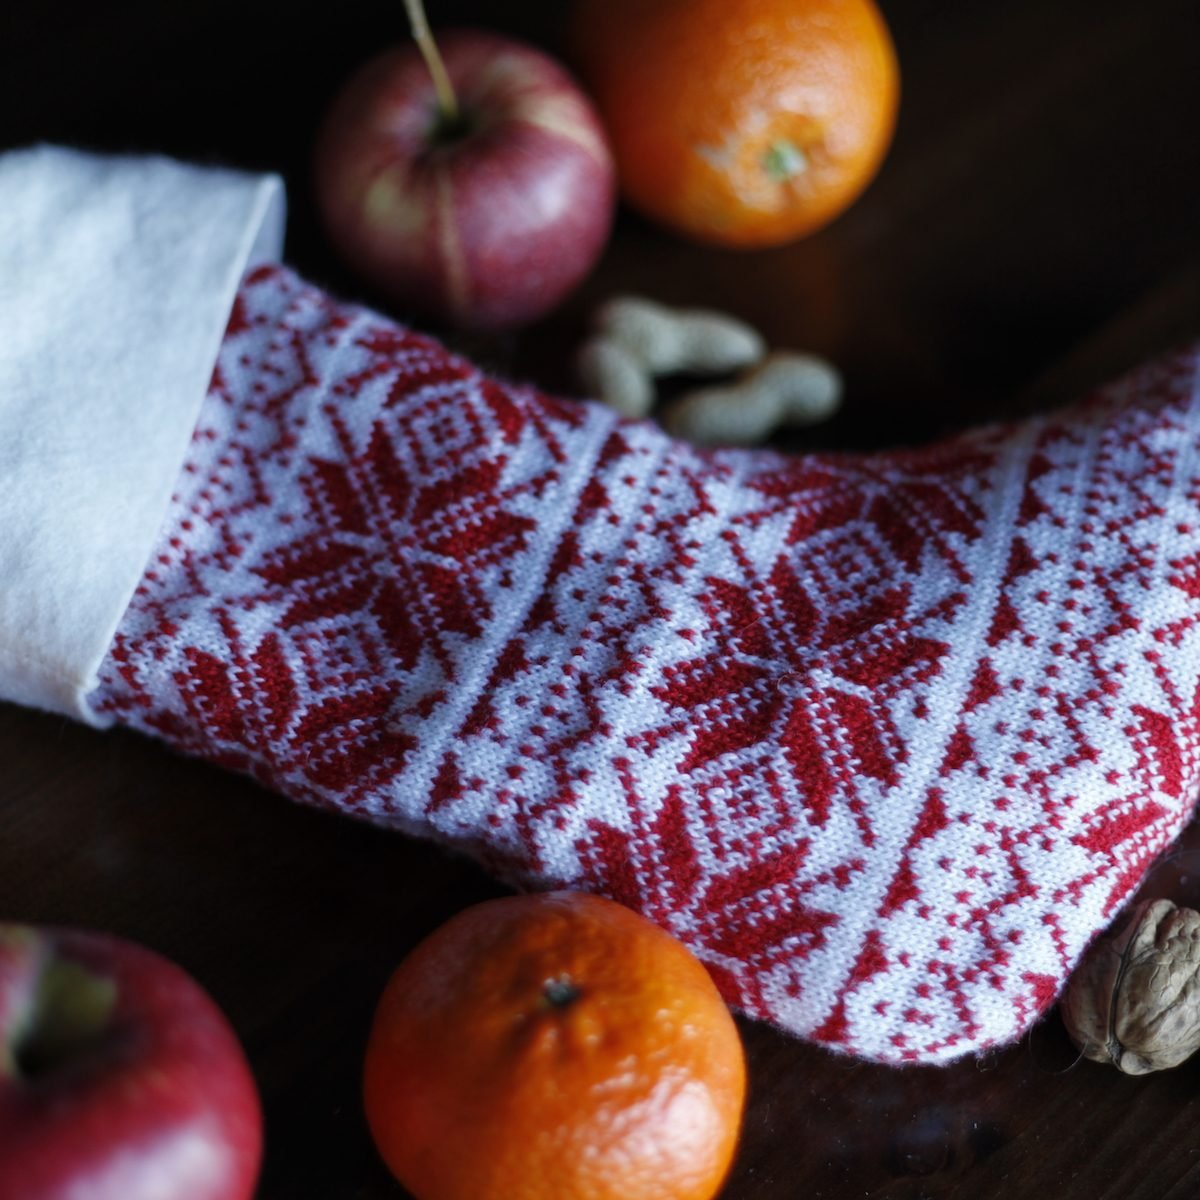 Knitted red and white Santa stocking with nuts, apples and oranges